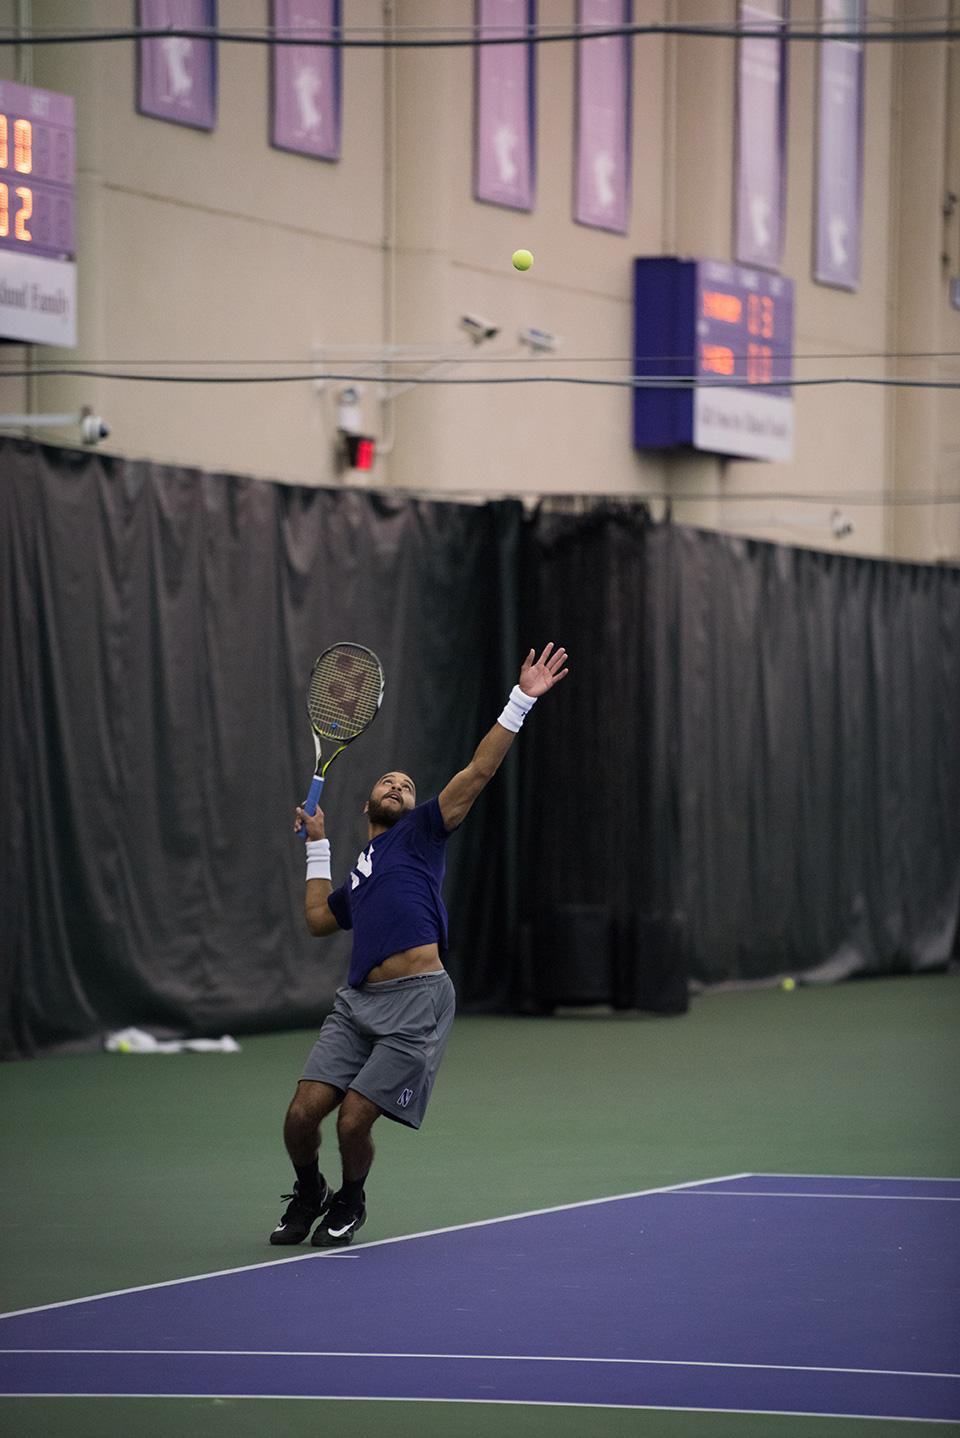 Sam Shropshire tosses the ball before a serve. The junior won his singles match against Penn State on Sunday in straight sets.